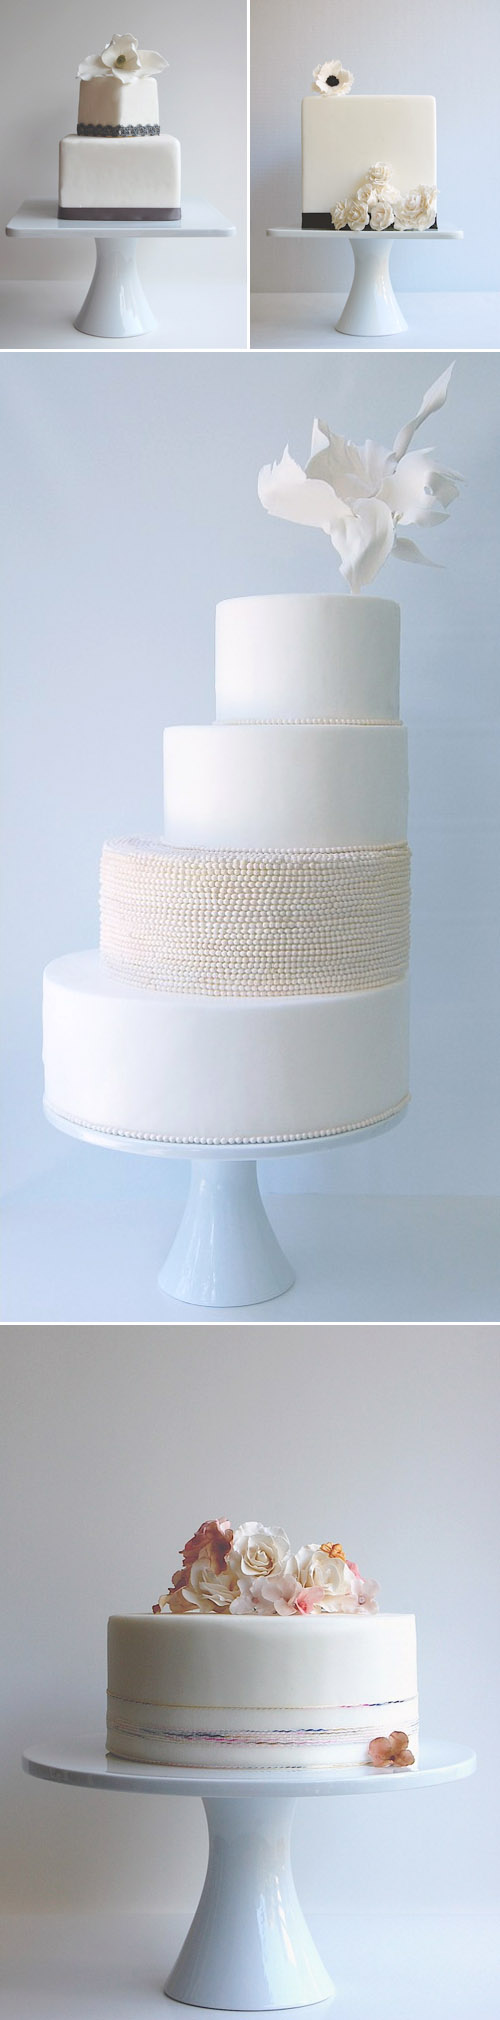 elegant, couture wedding cakes from Magpie's Cake, Washington, D.C.